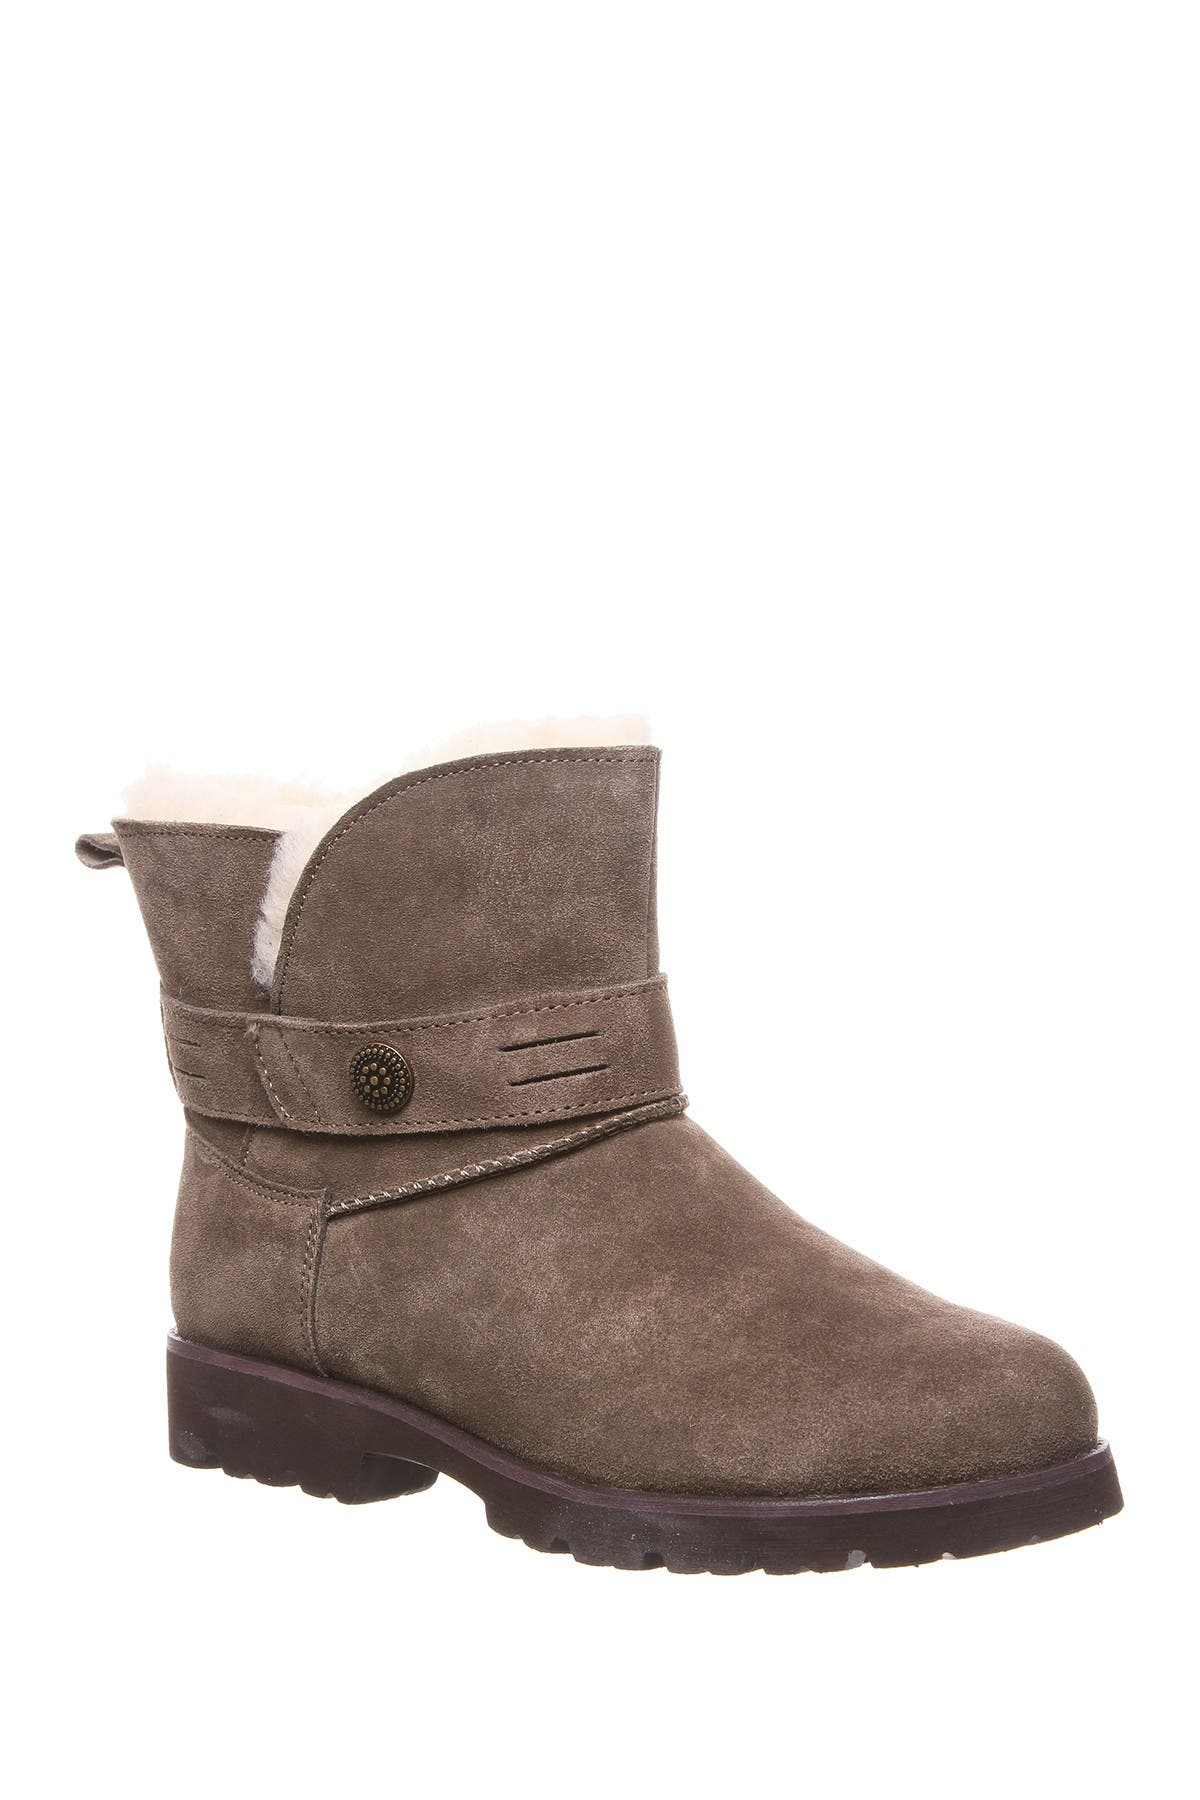 Image of BEARPAW Wellston Ankle Boot